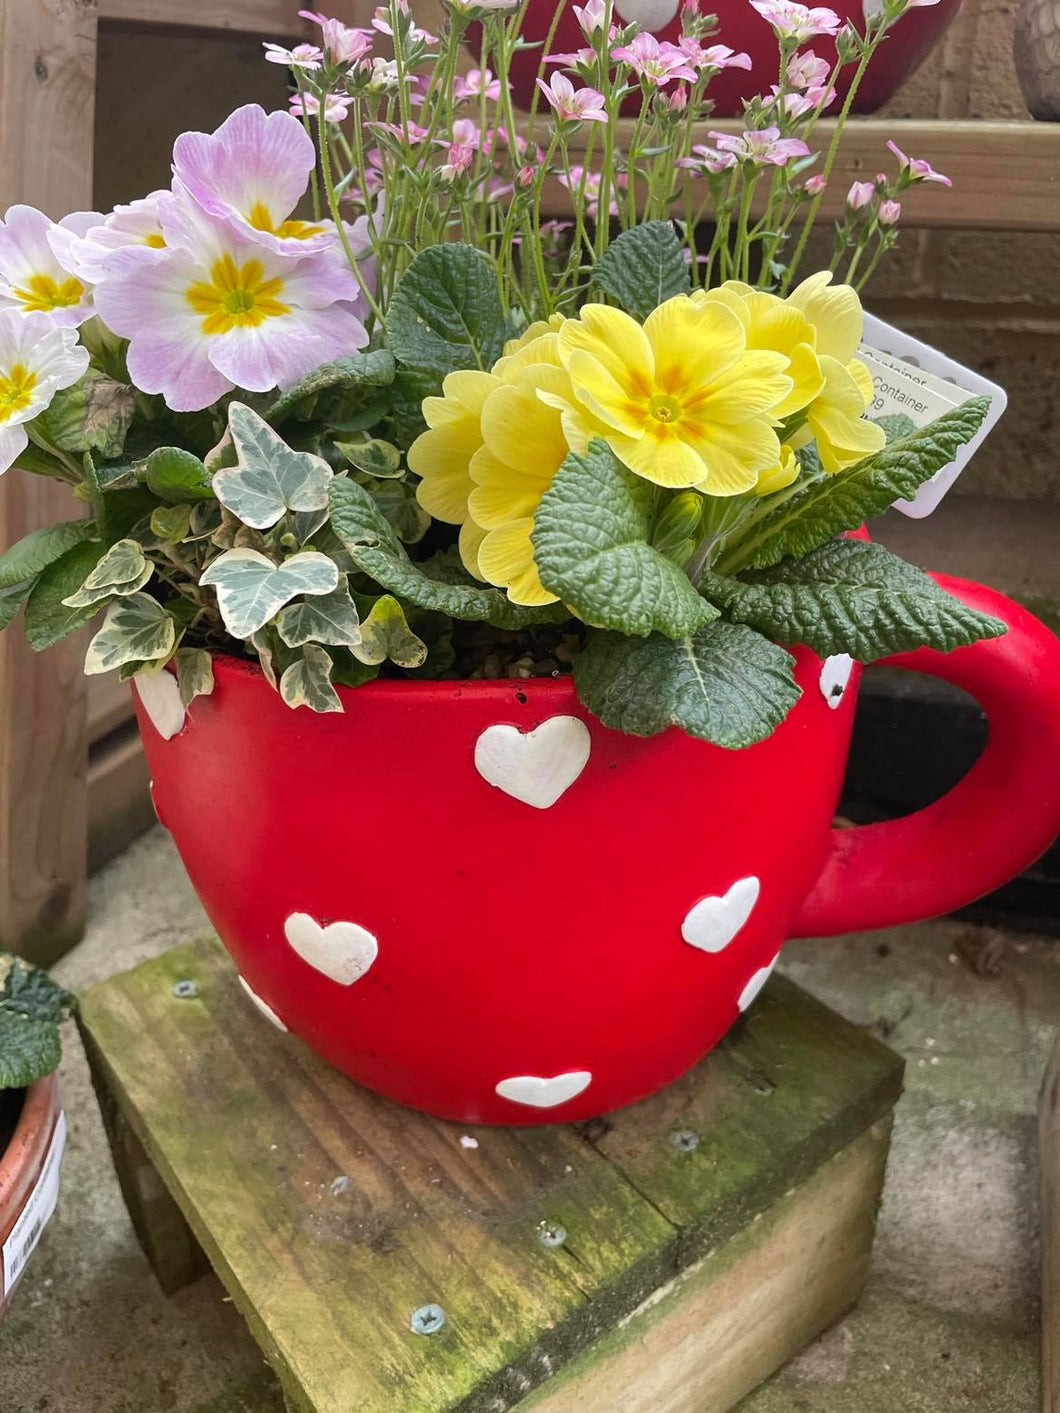 Teacup Plant - Including Plants  - Outdoor